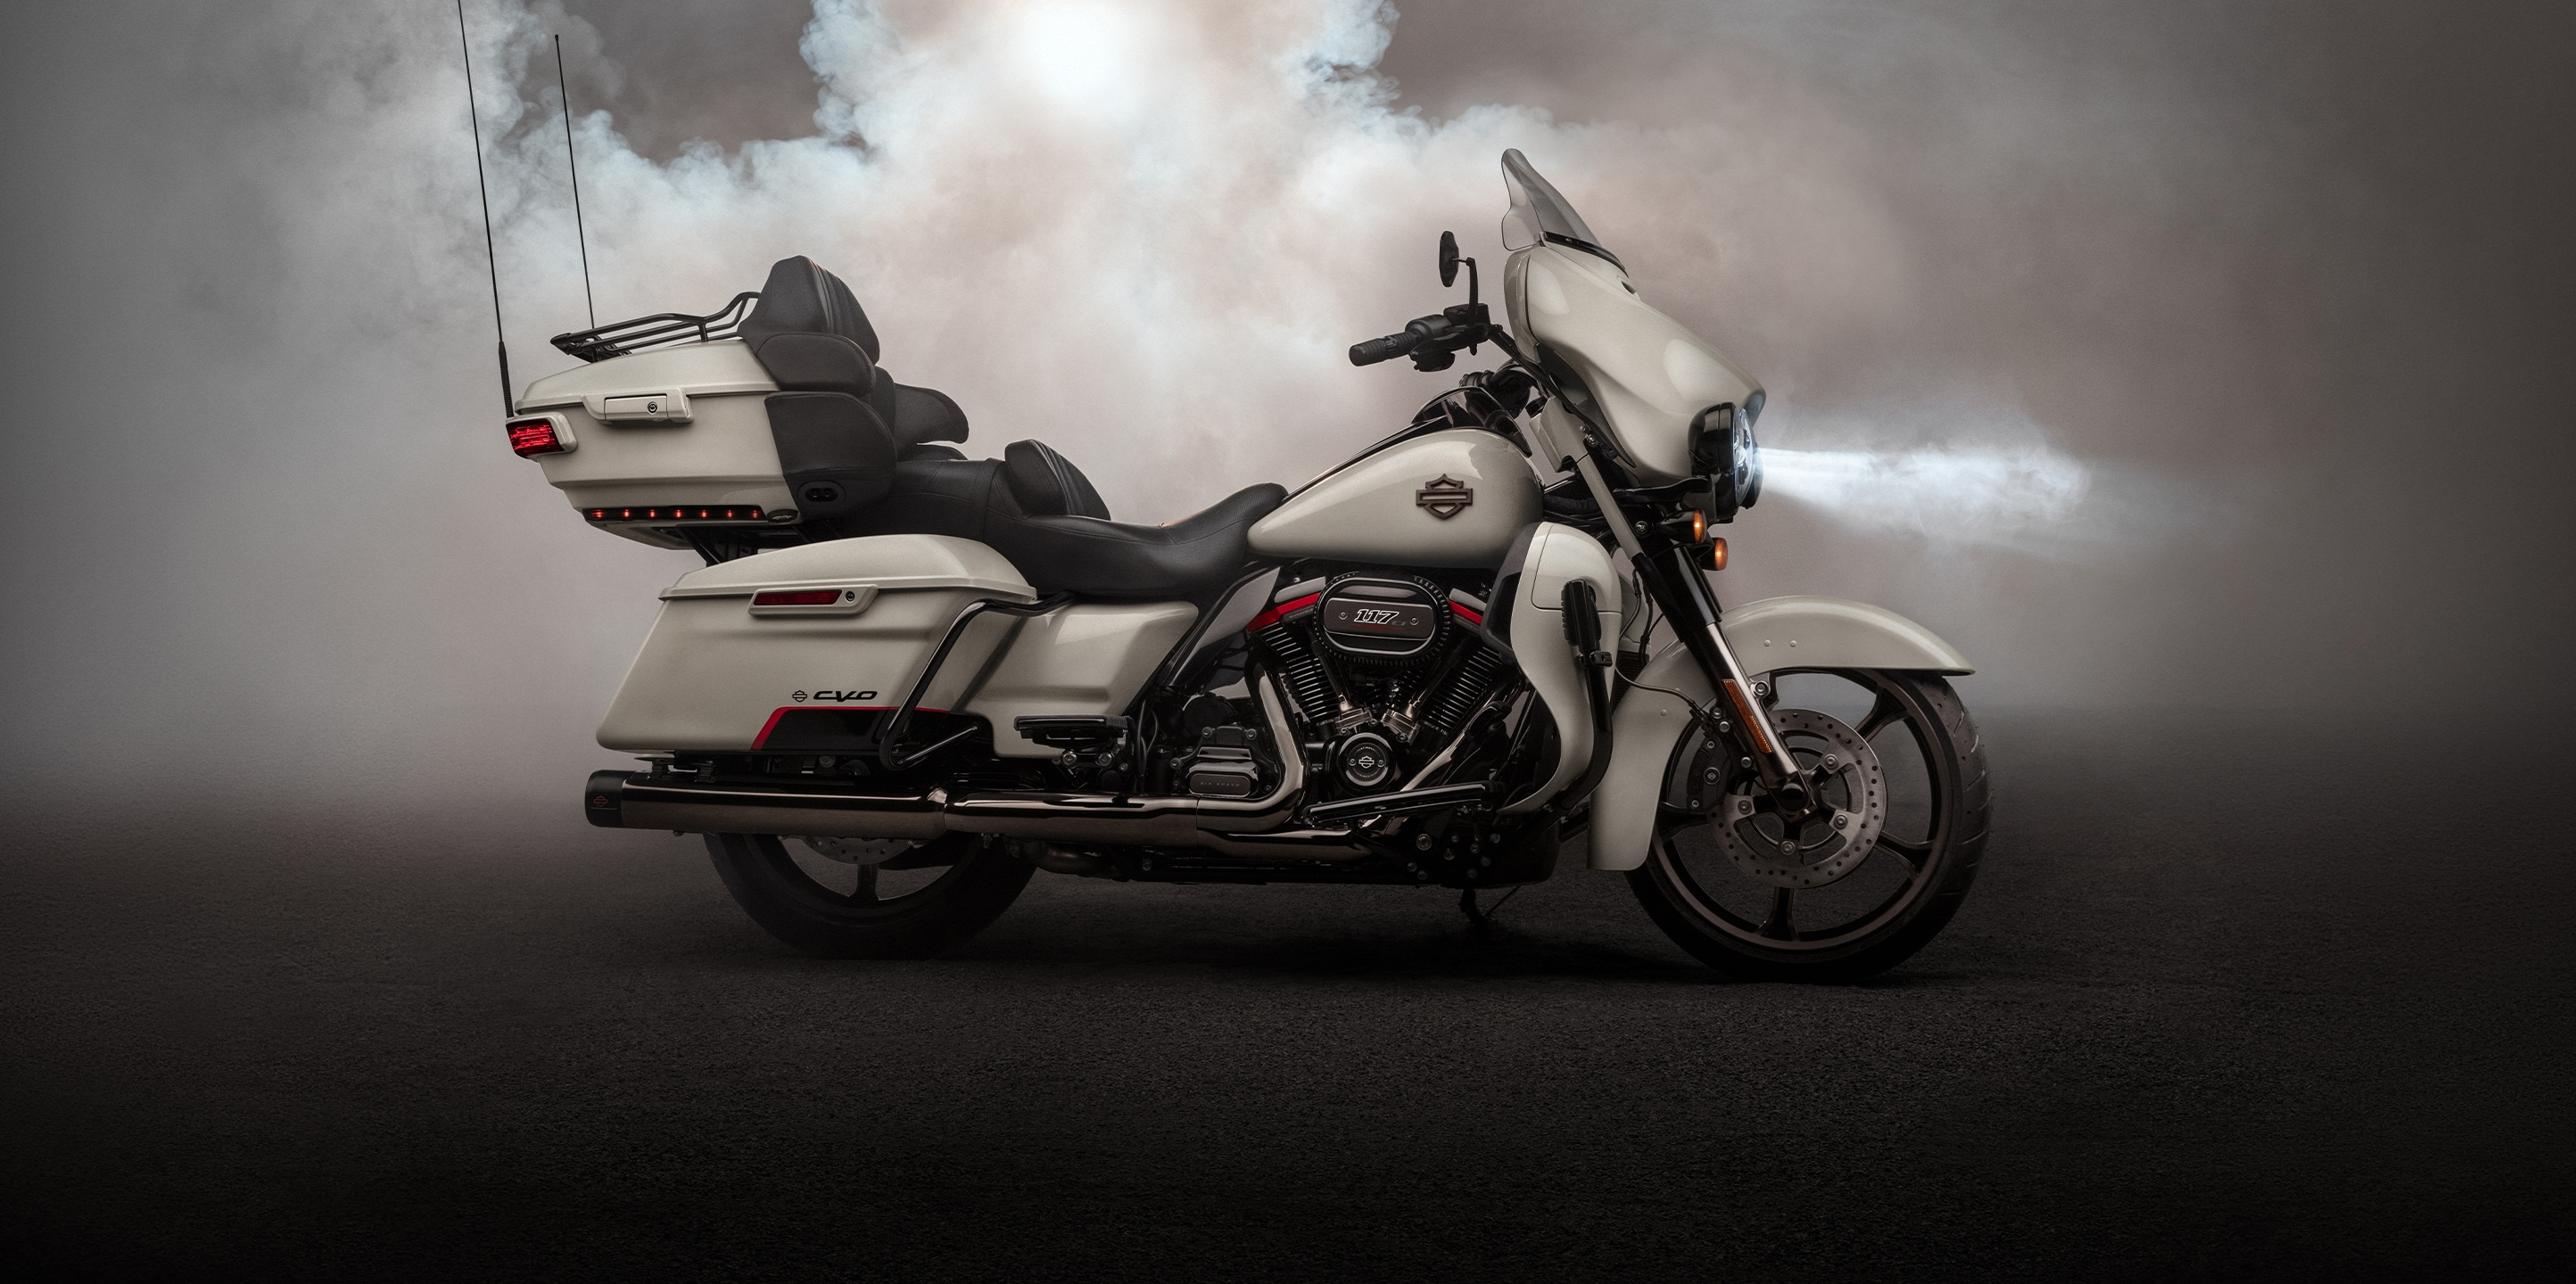 2020 CVO Limited motorcycle parked by mountain scenery